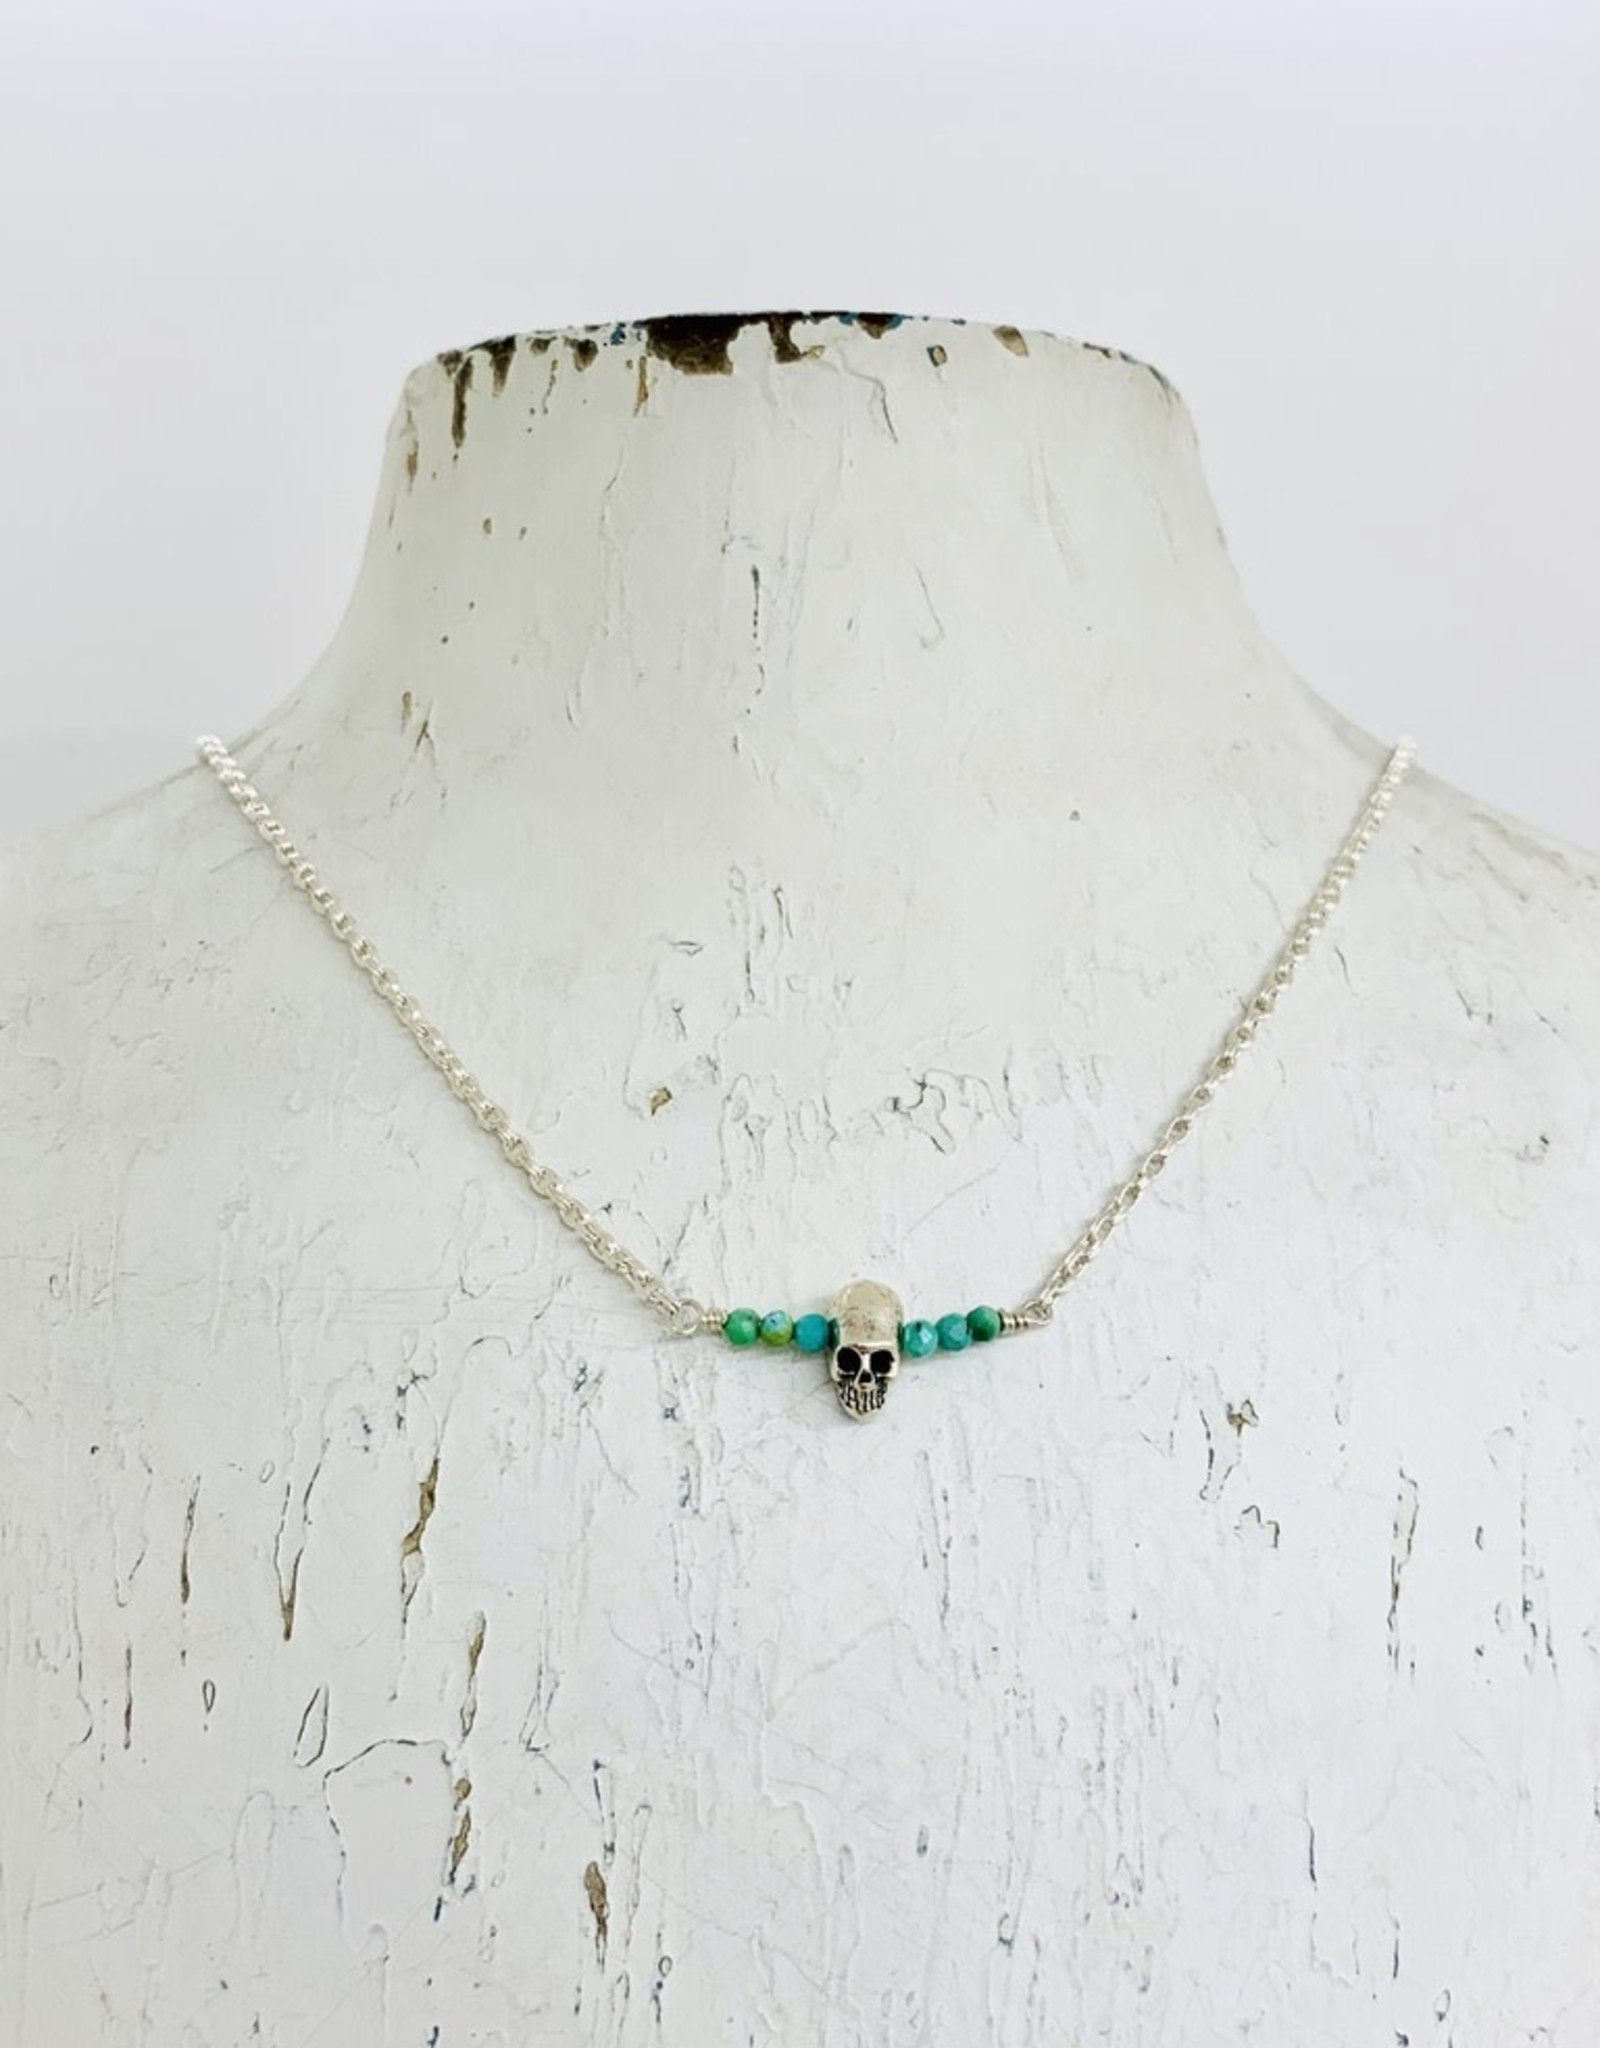 Handmade Silver Necklace with 8 tiny turquoise, shiny skull